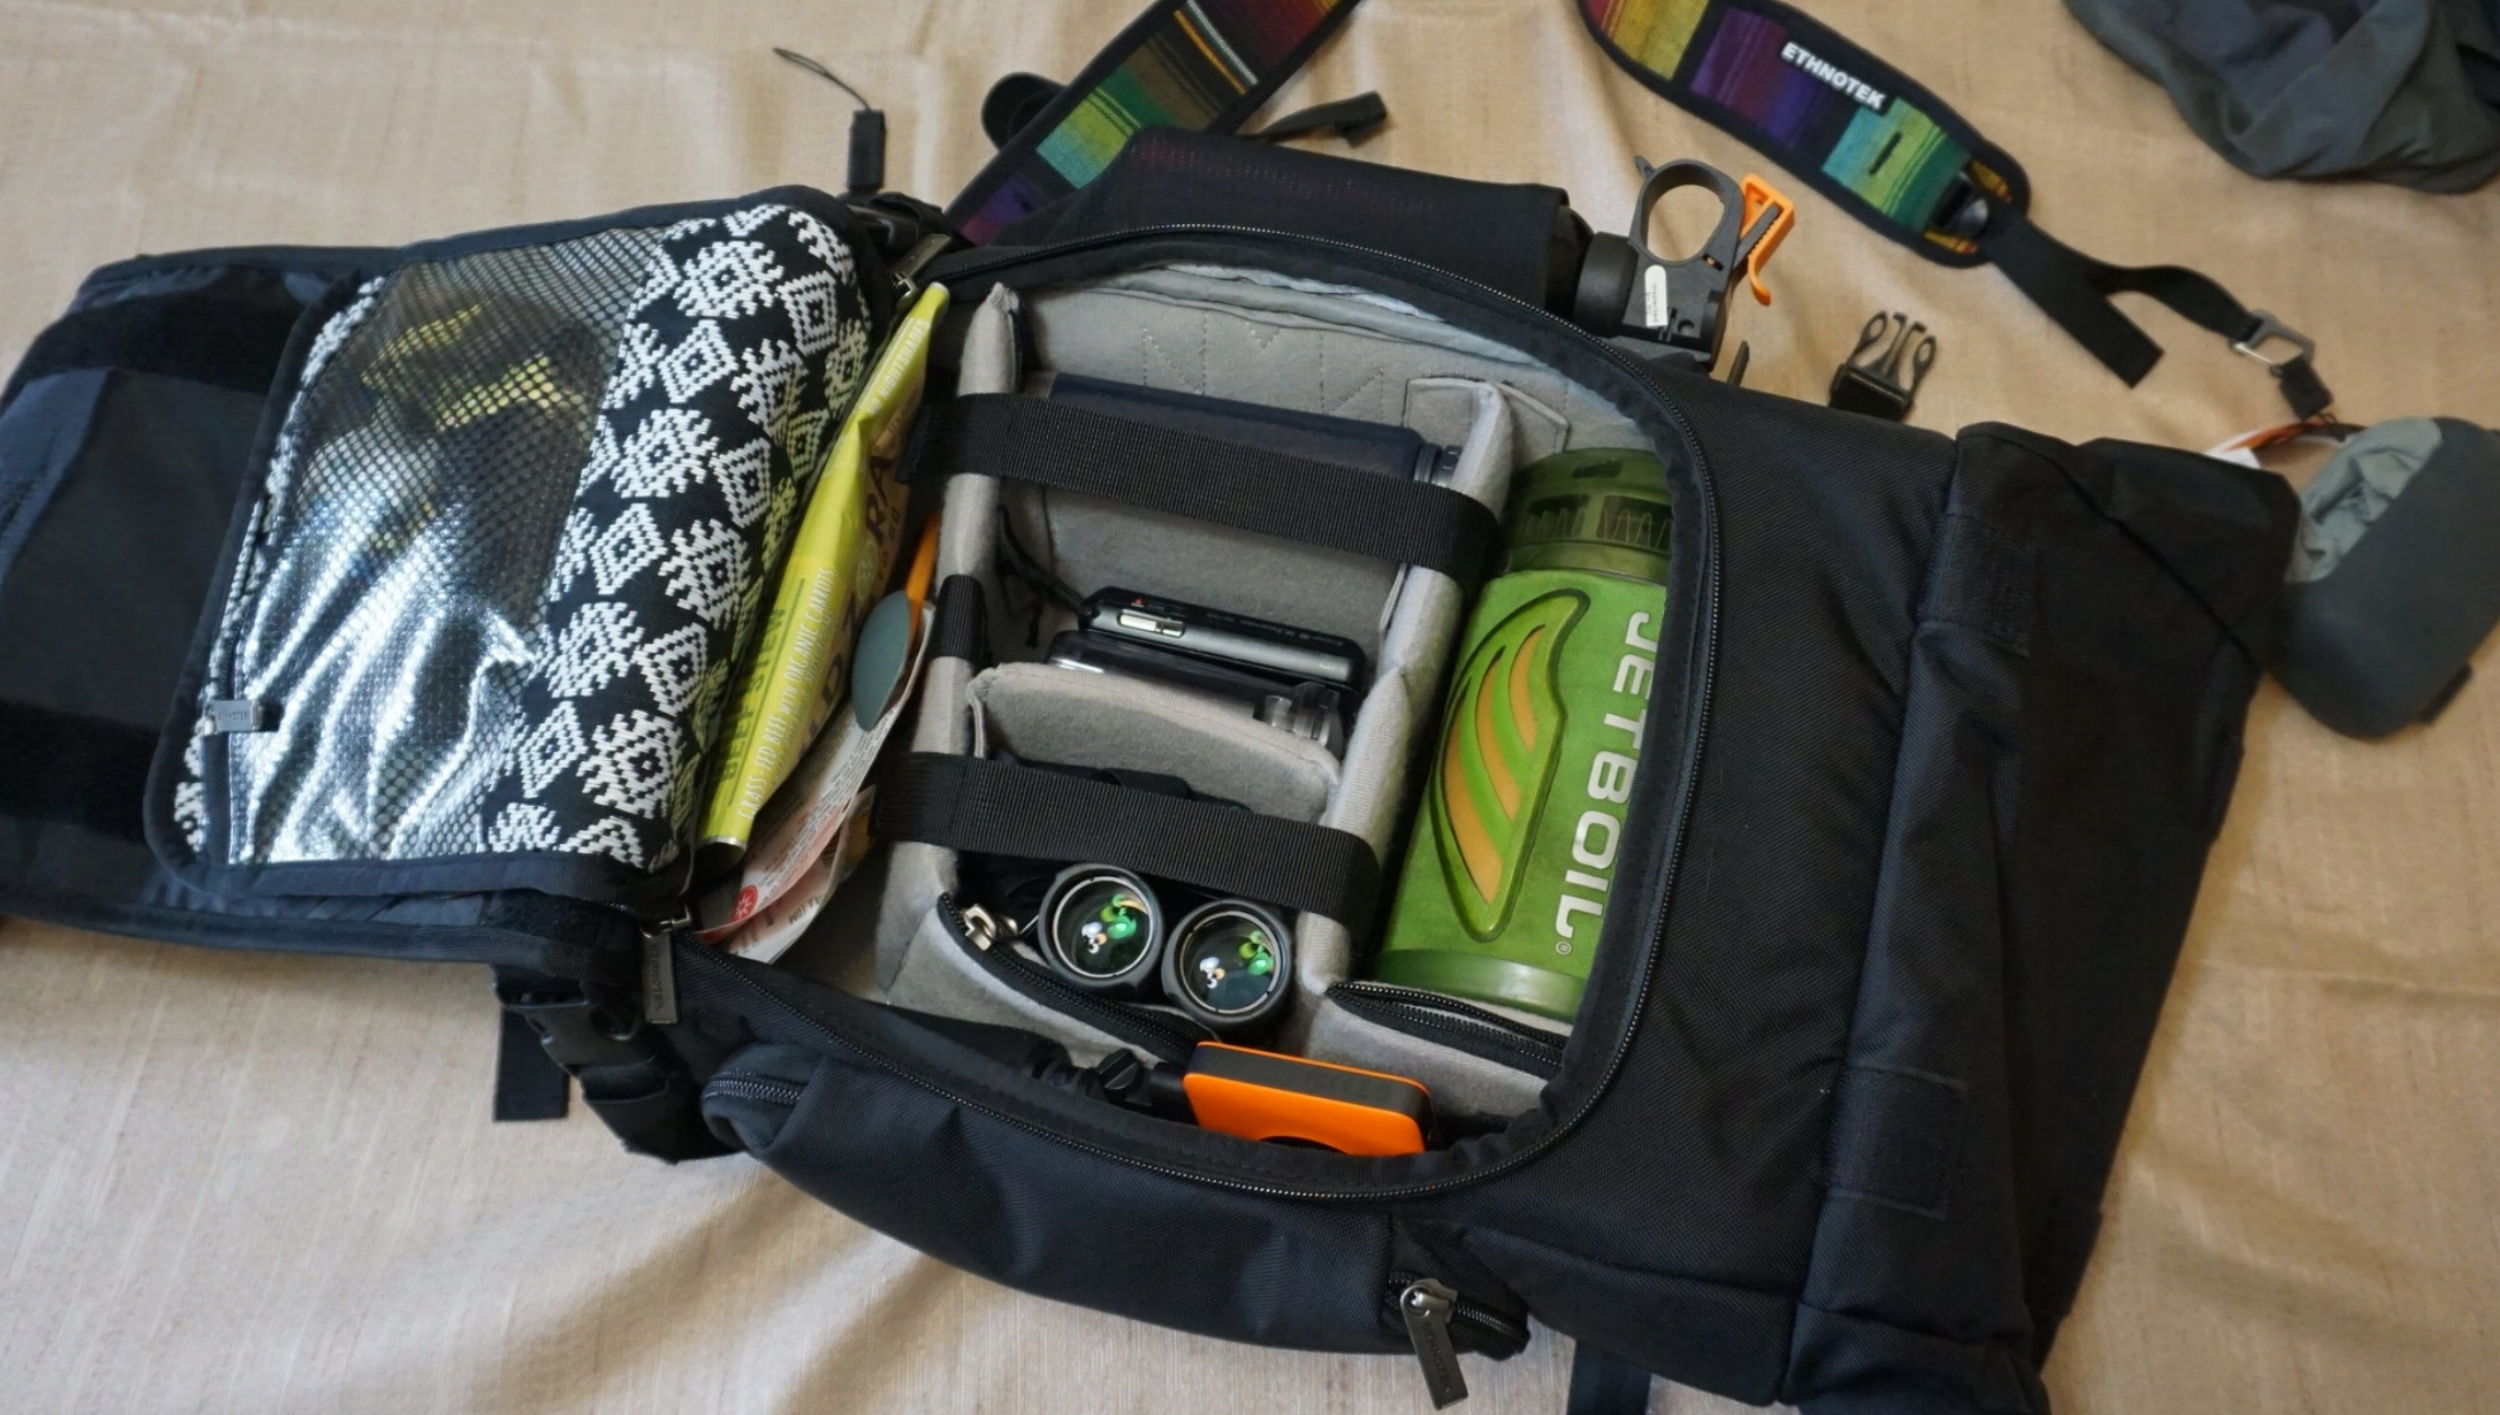 So many pockets! I easily fit everything I needed in here for a day hike photo shoot.